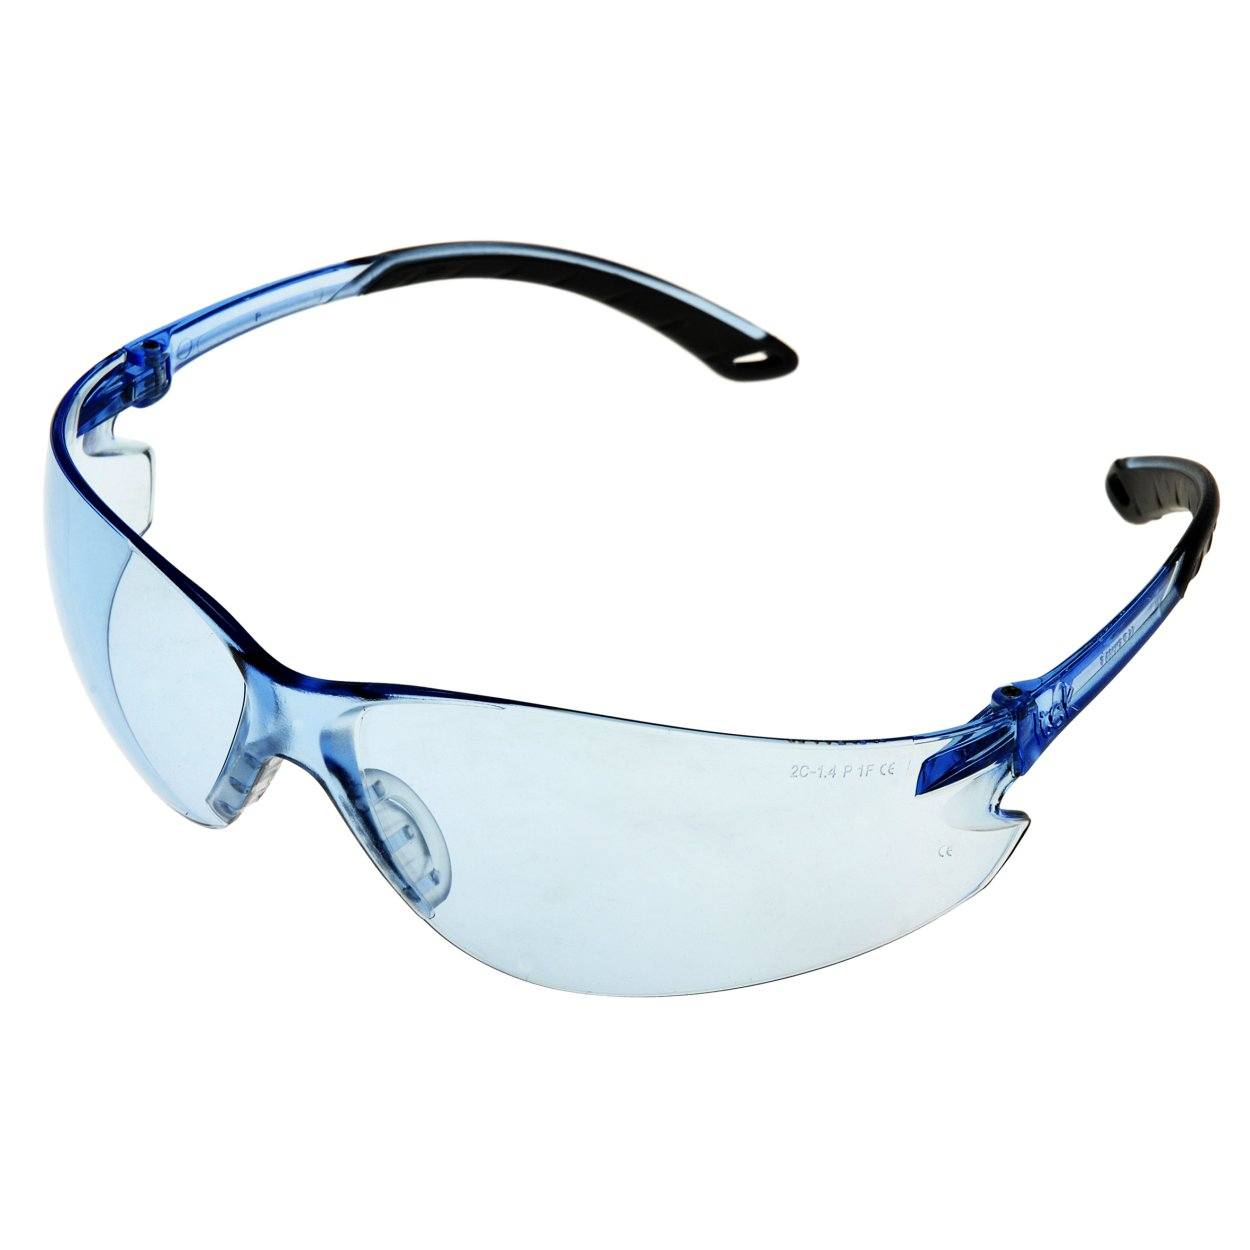 itex safety glasses clark forest eye protection